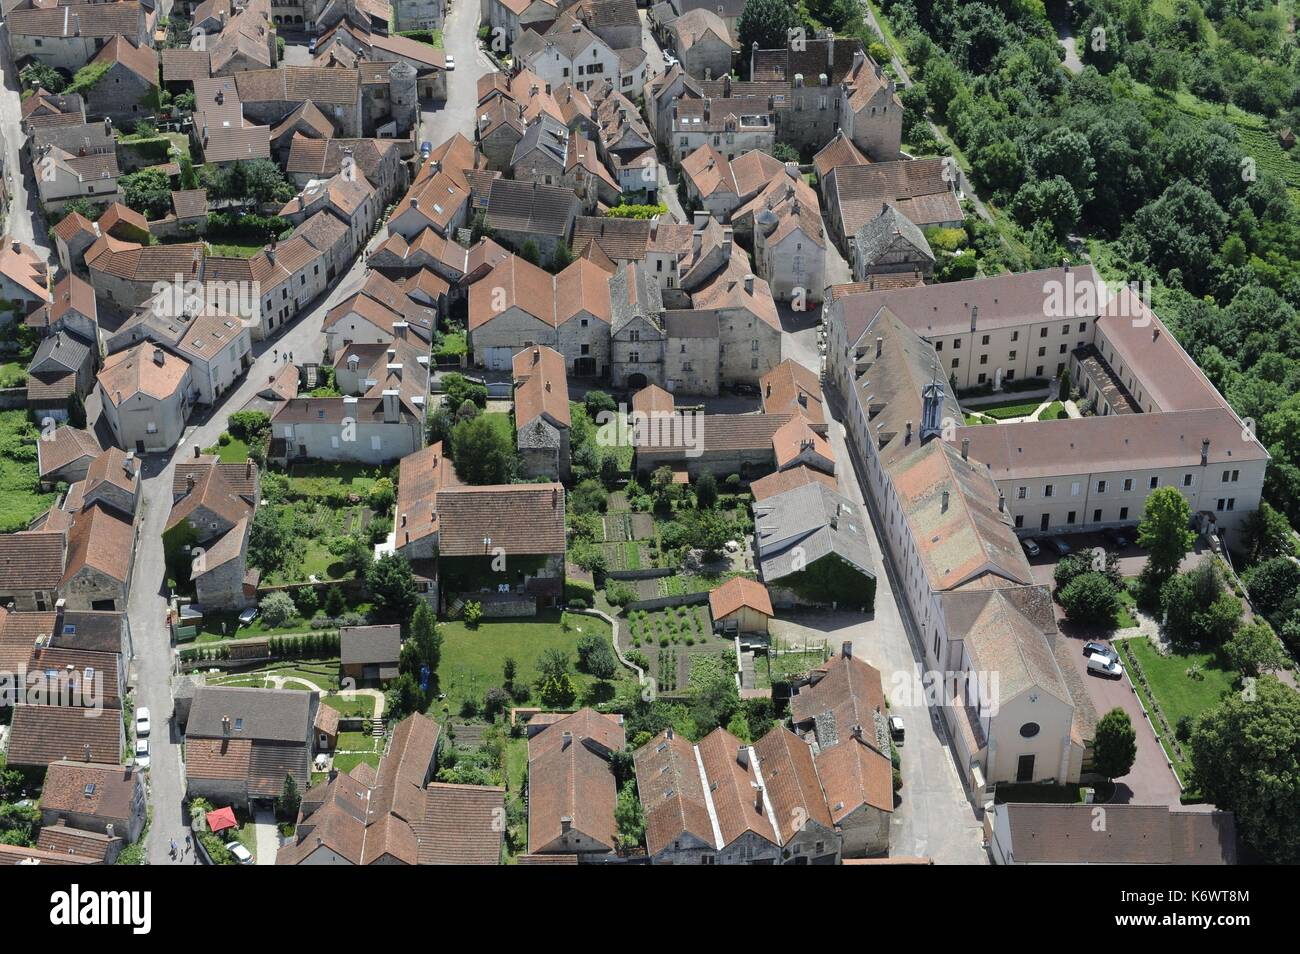 France, Cote d'Or, Flavigny sur Ozerain, labeled The Most Beautiful Villages of France (aerial view) - Stock Image